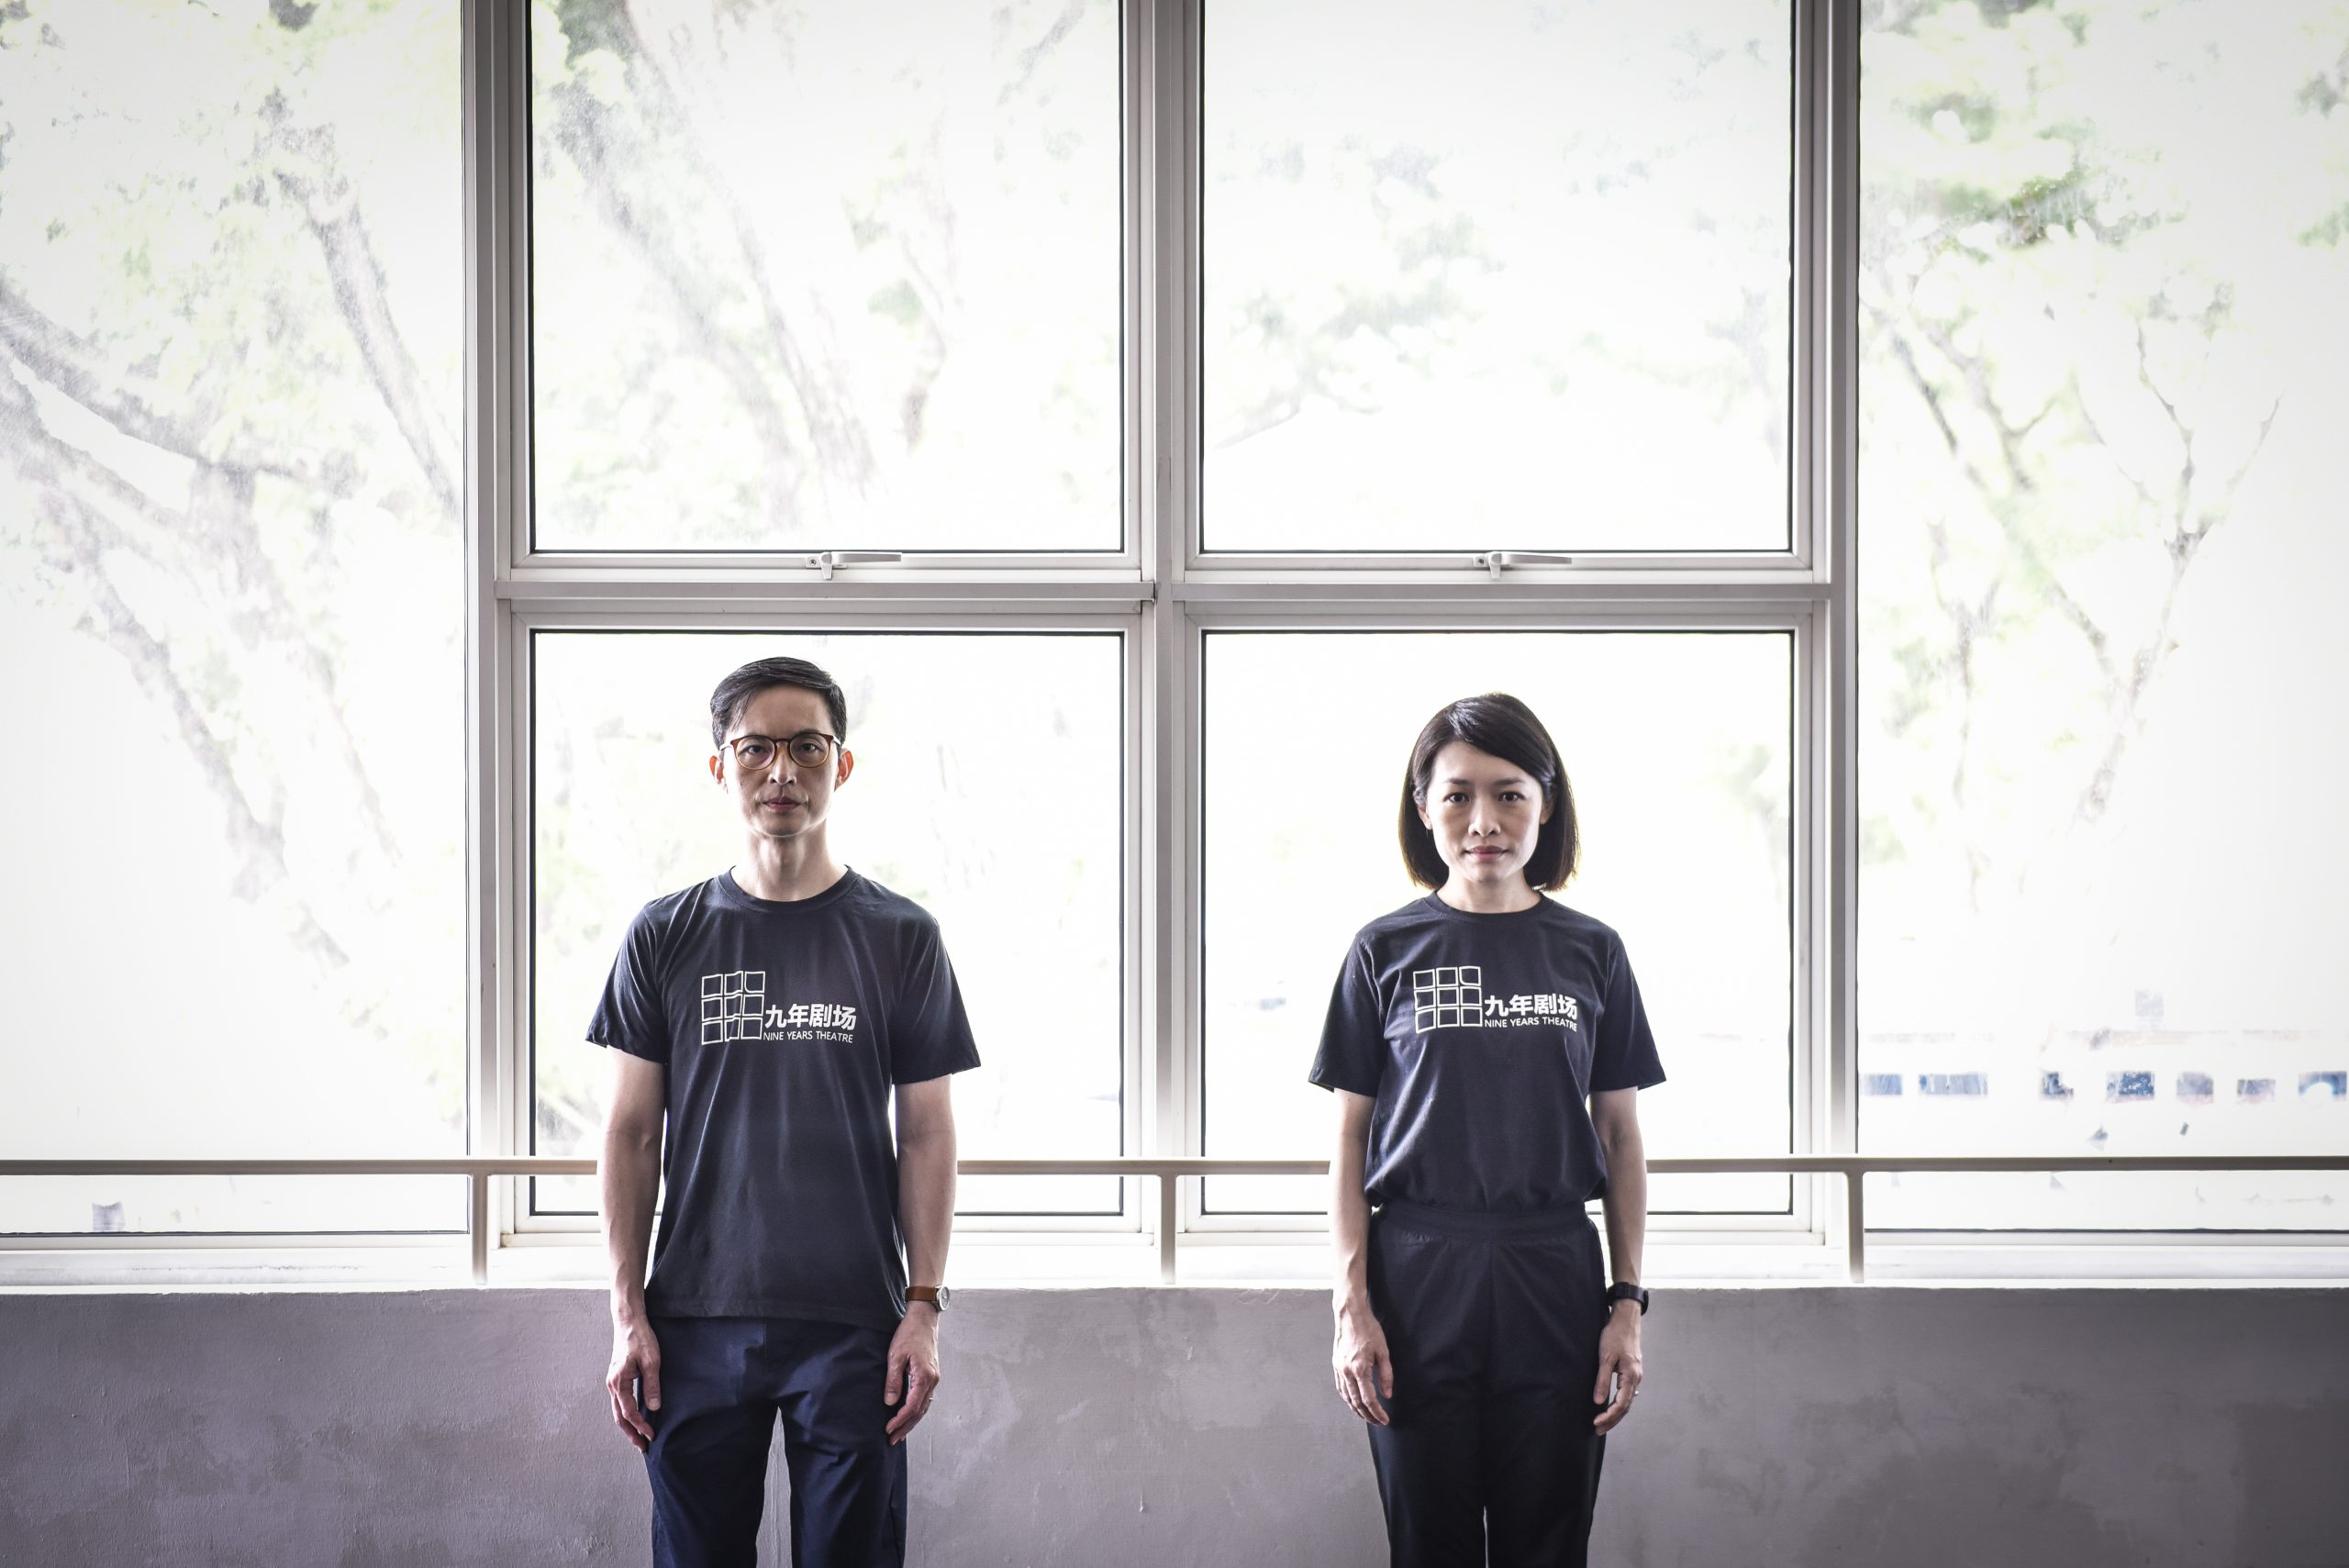 Company director Ms Mia Chee and artistic director Mr Nelson Chia in Nine Years Theatre's new home at Kampong Glam's Aliwal Arts Centre. The group had barely moved in when the Circuit Breaker kicked in. It will remain quiet till restrictions are lifted for arts spaces. Photo by: Caroline Chia